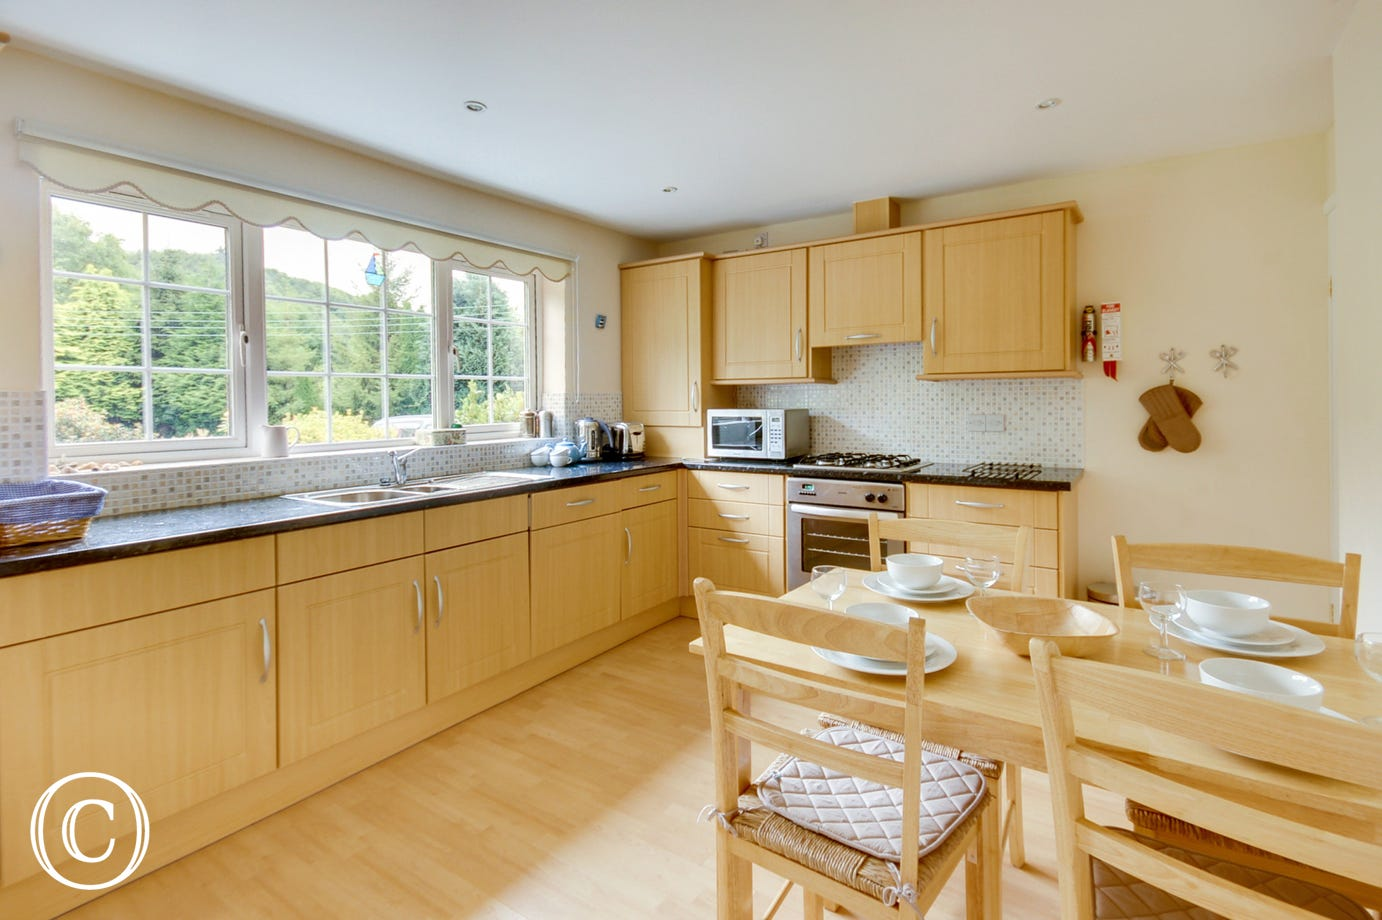 The spacious dining kitchen boasts modern beech units complemented by granite style worktops